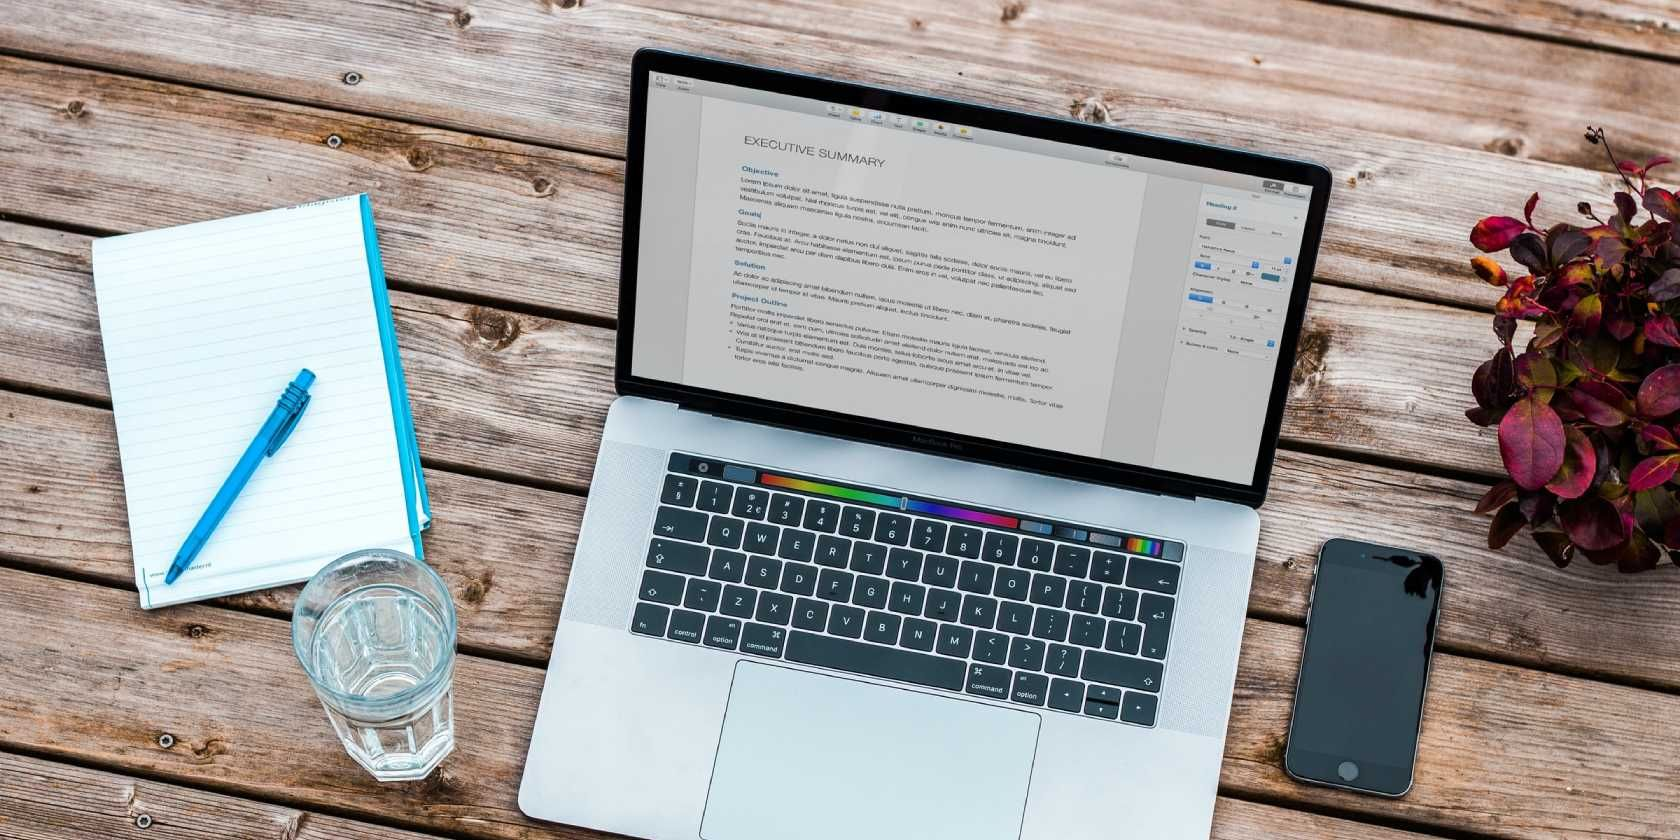 5 Unique Document Editors That Are Unlike Word and Google Docs